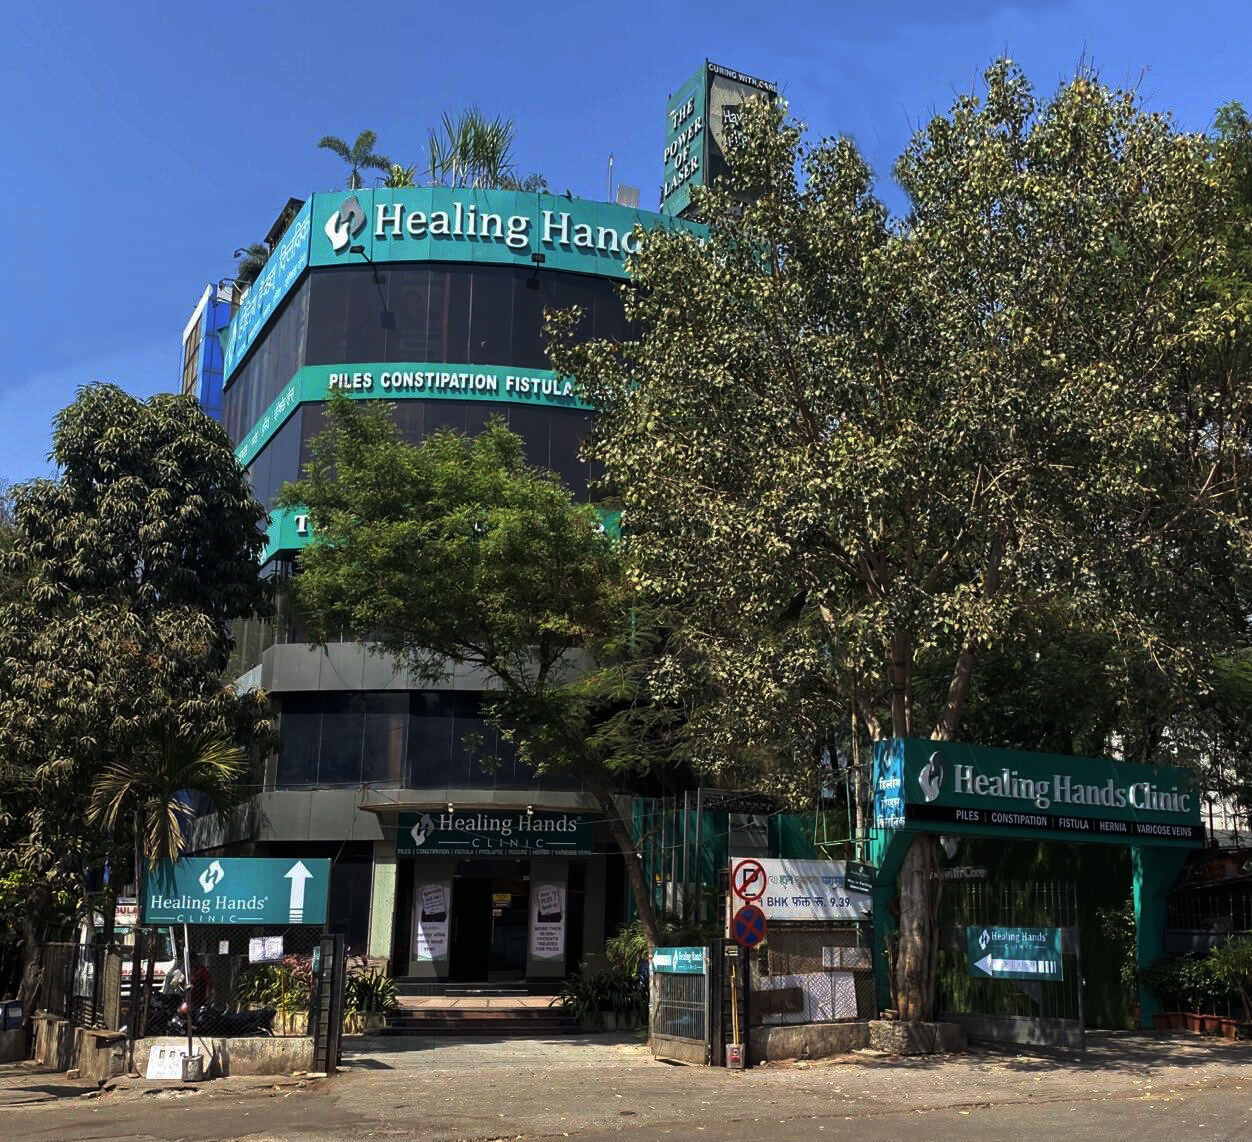 Healing Hands Clinic in india